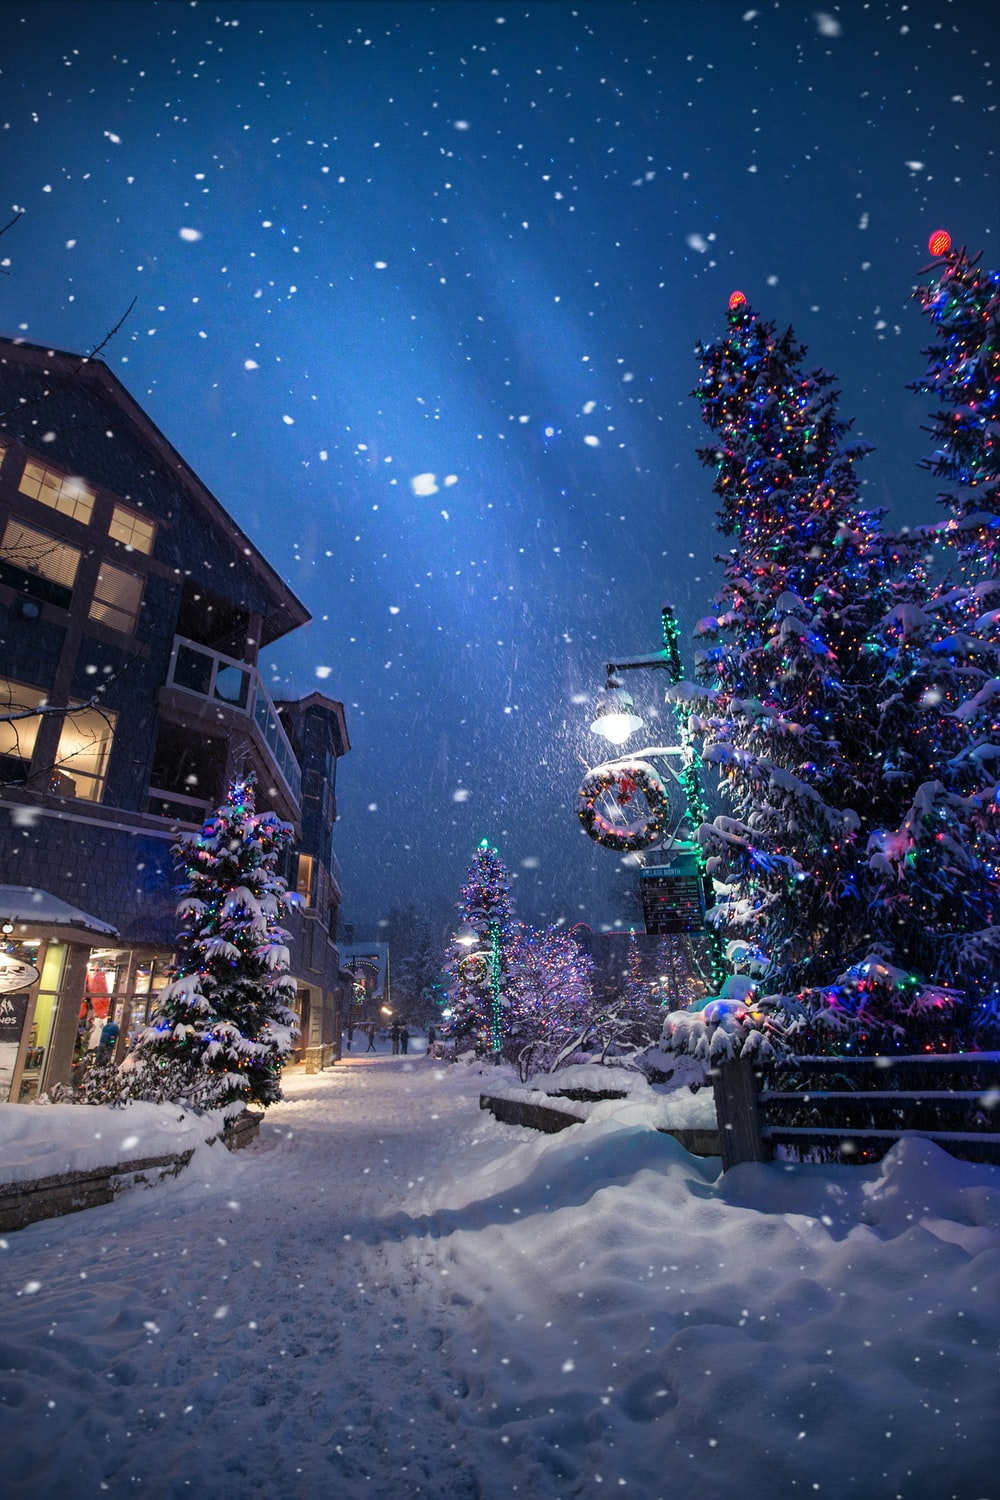 Christmas Pictures [2018] | Download Free Images on Unsplash